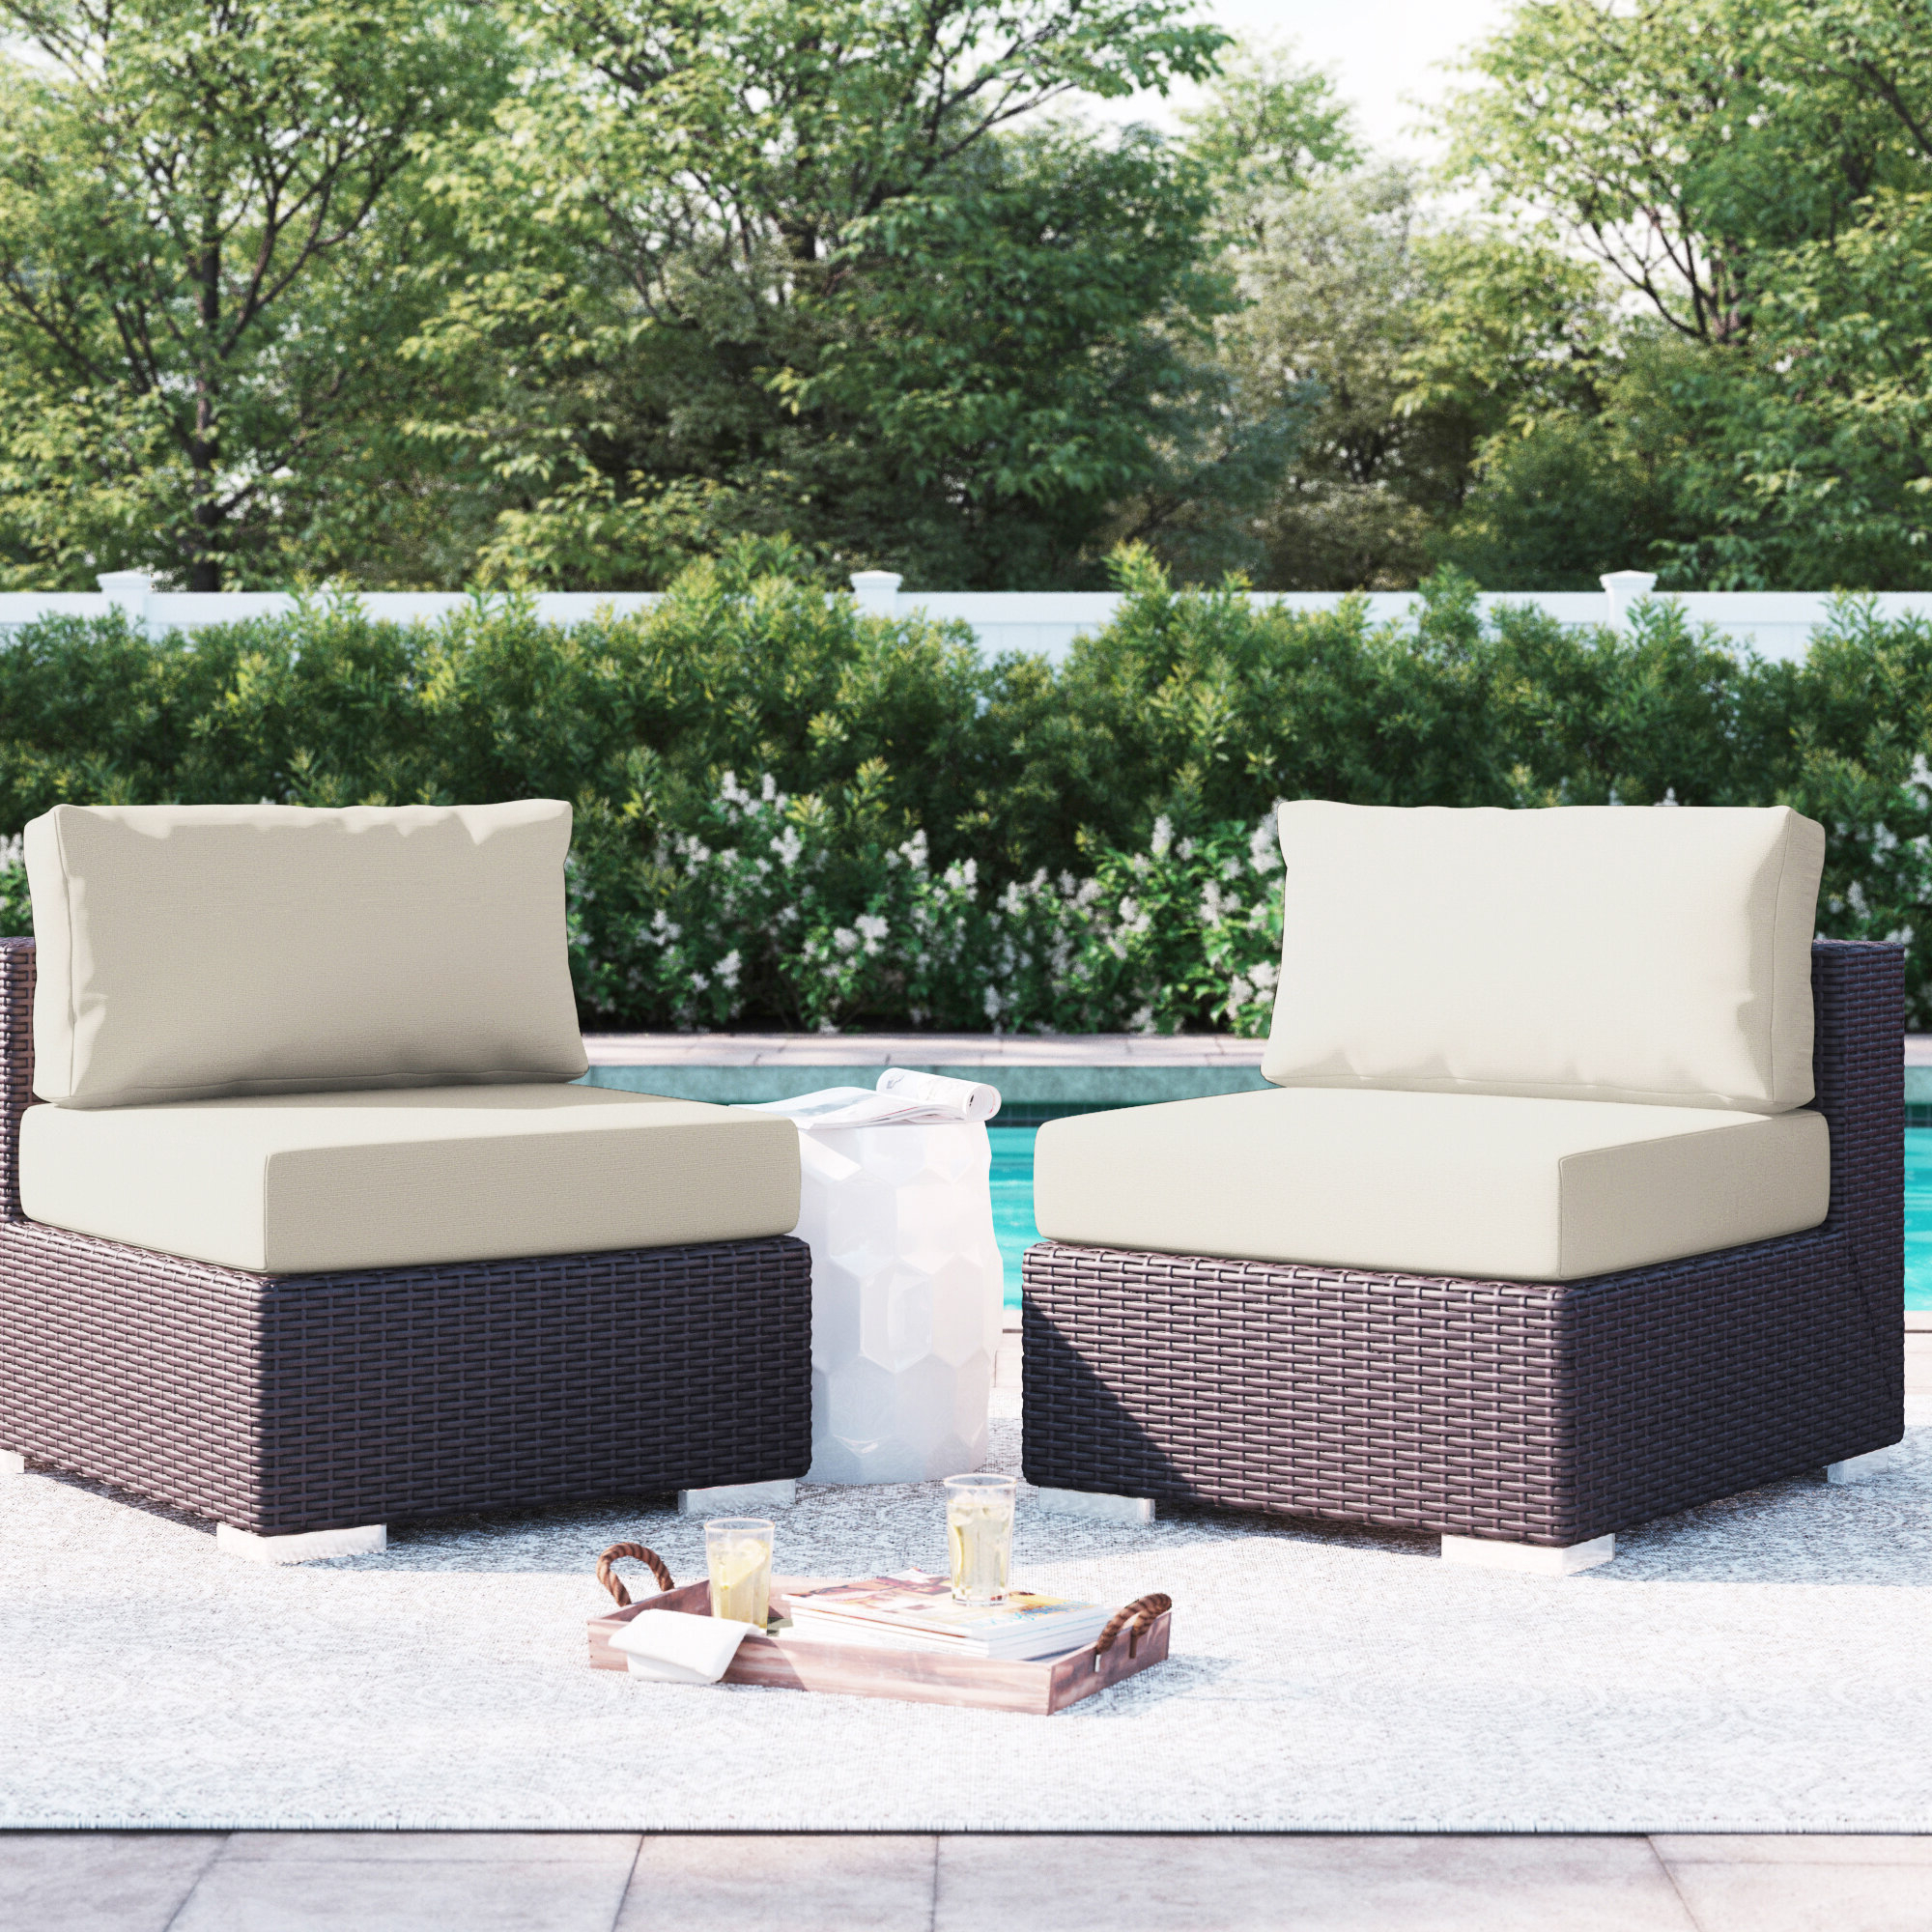 Brentwood Patio Sofas With Cushions With Current Brentwood Armless Chair With Cushions (View 13 of 18)